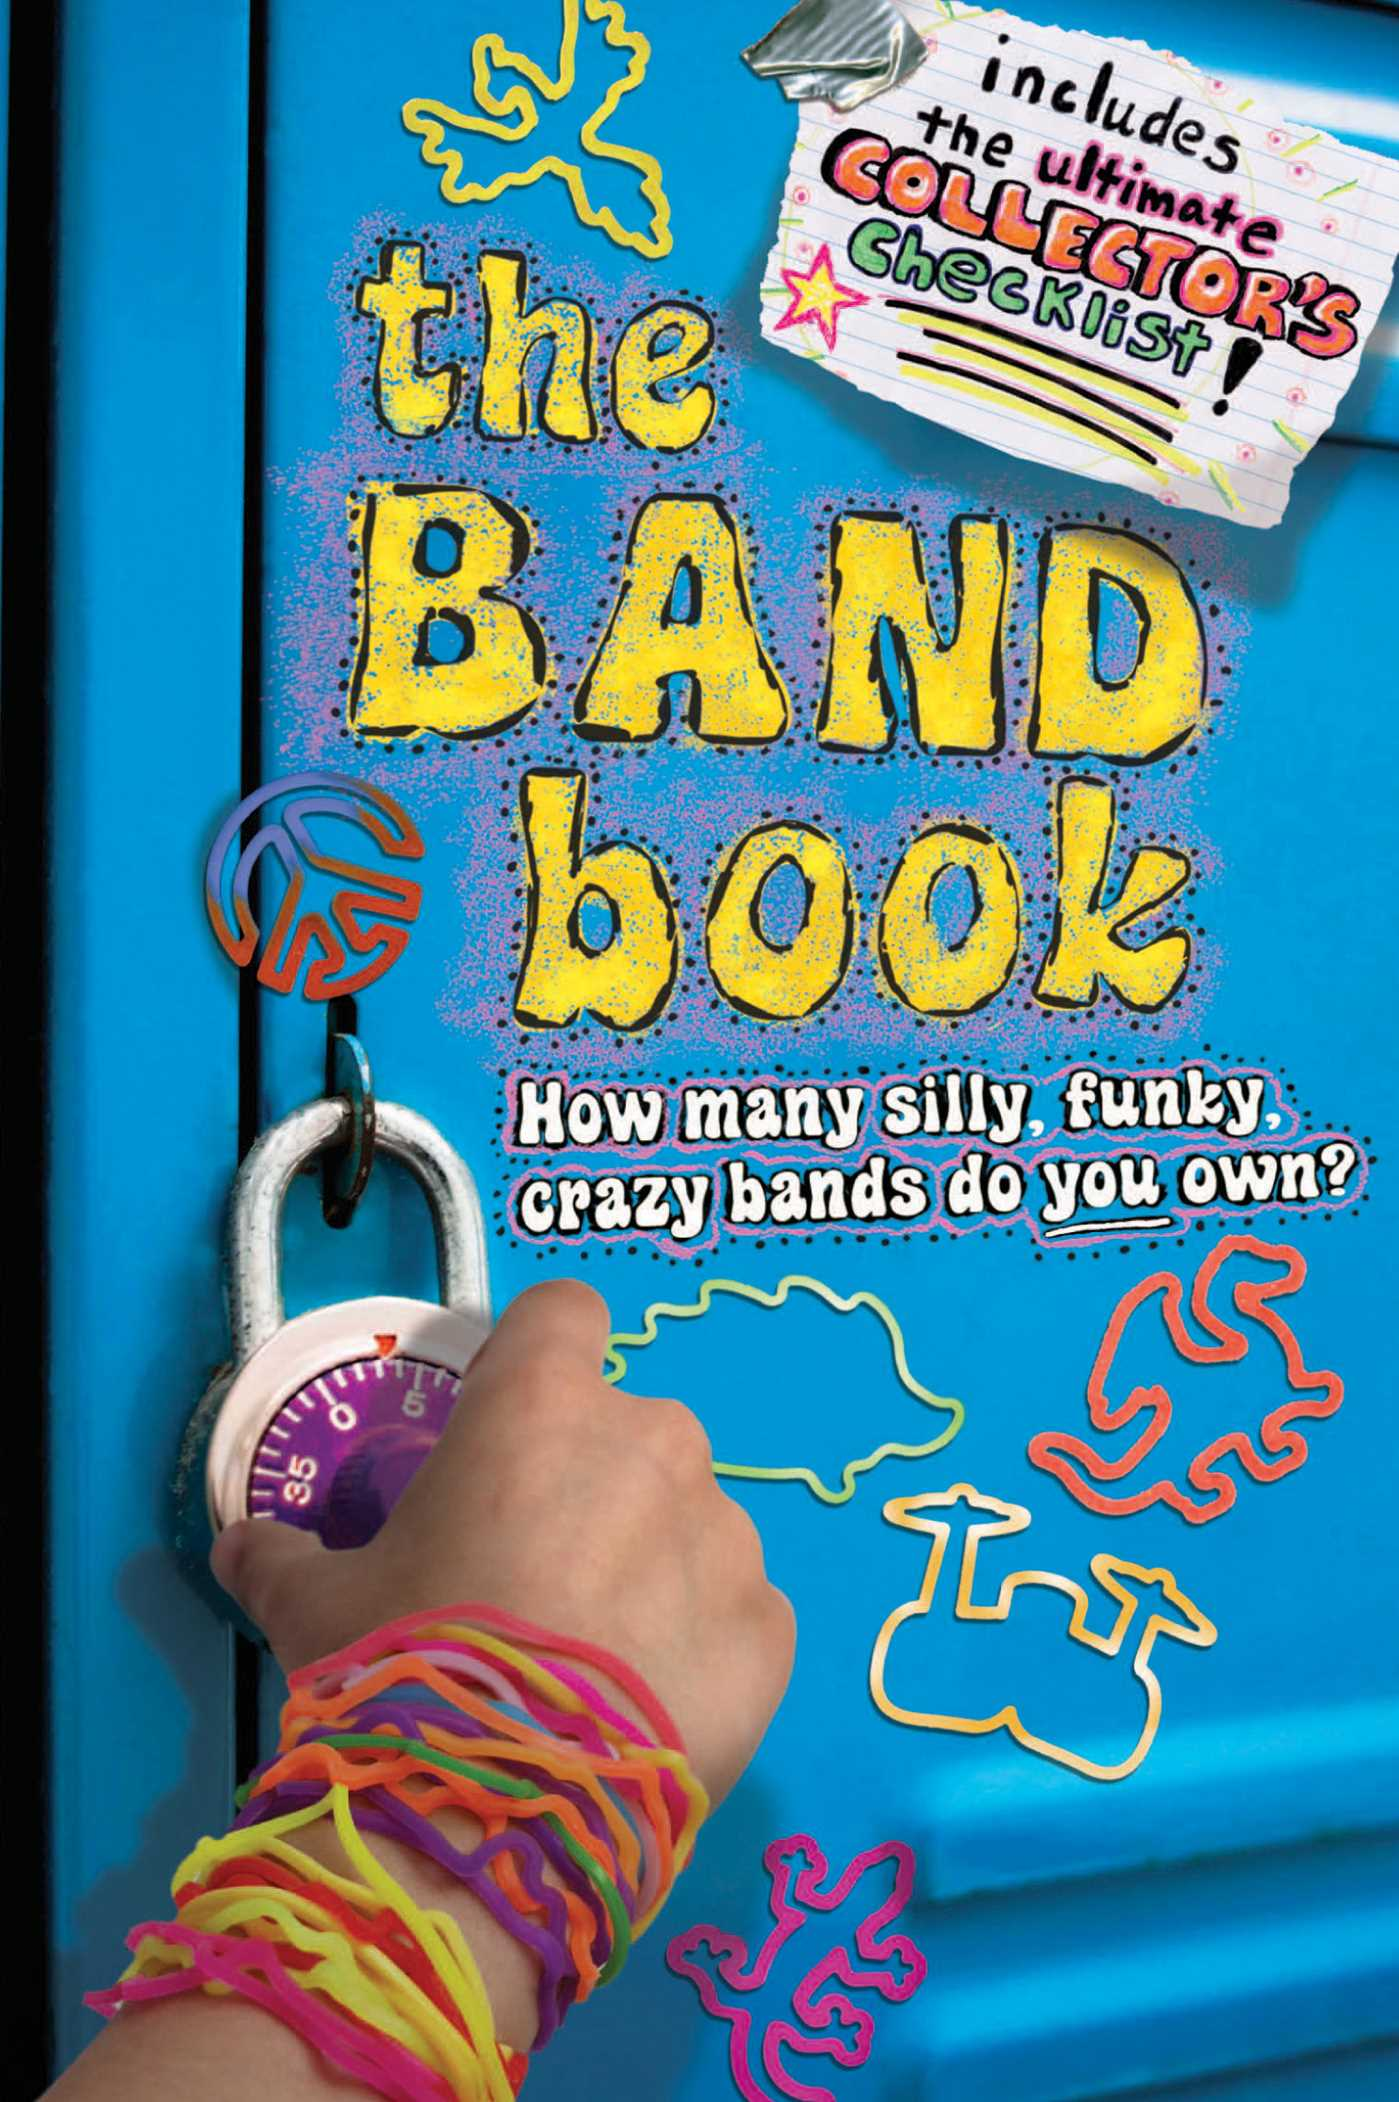 The-band-book-9781442436718_hr